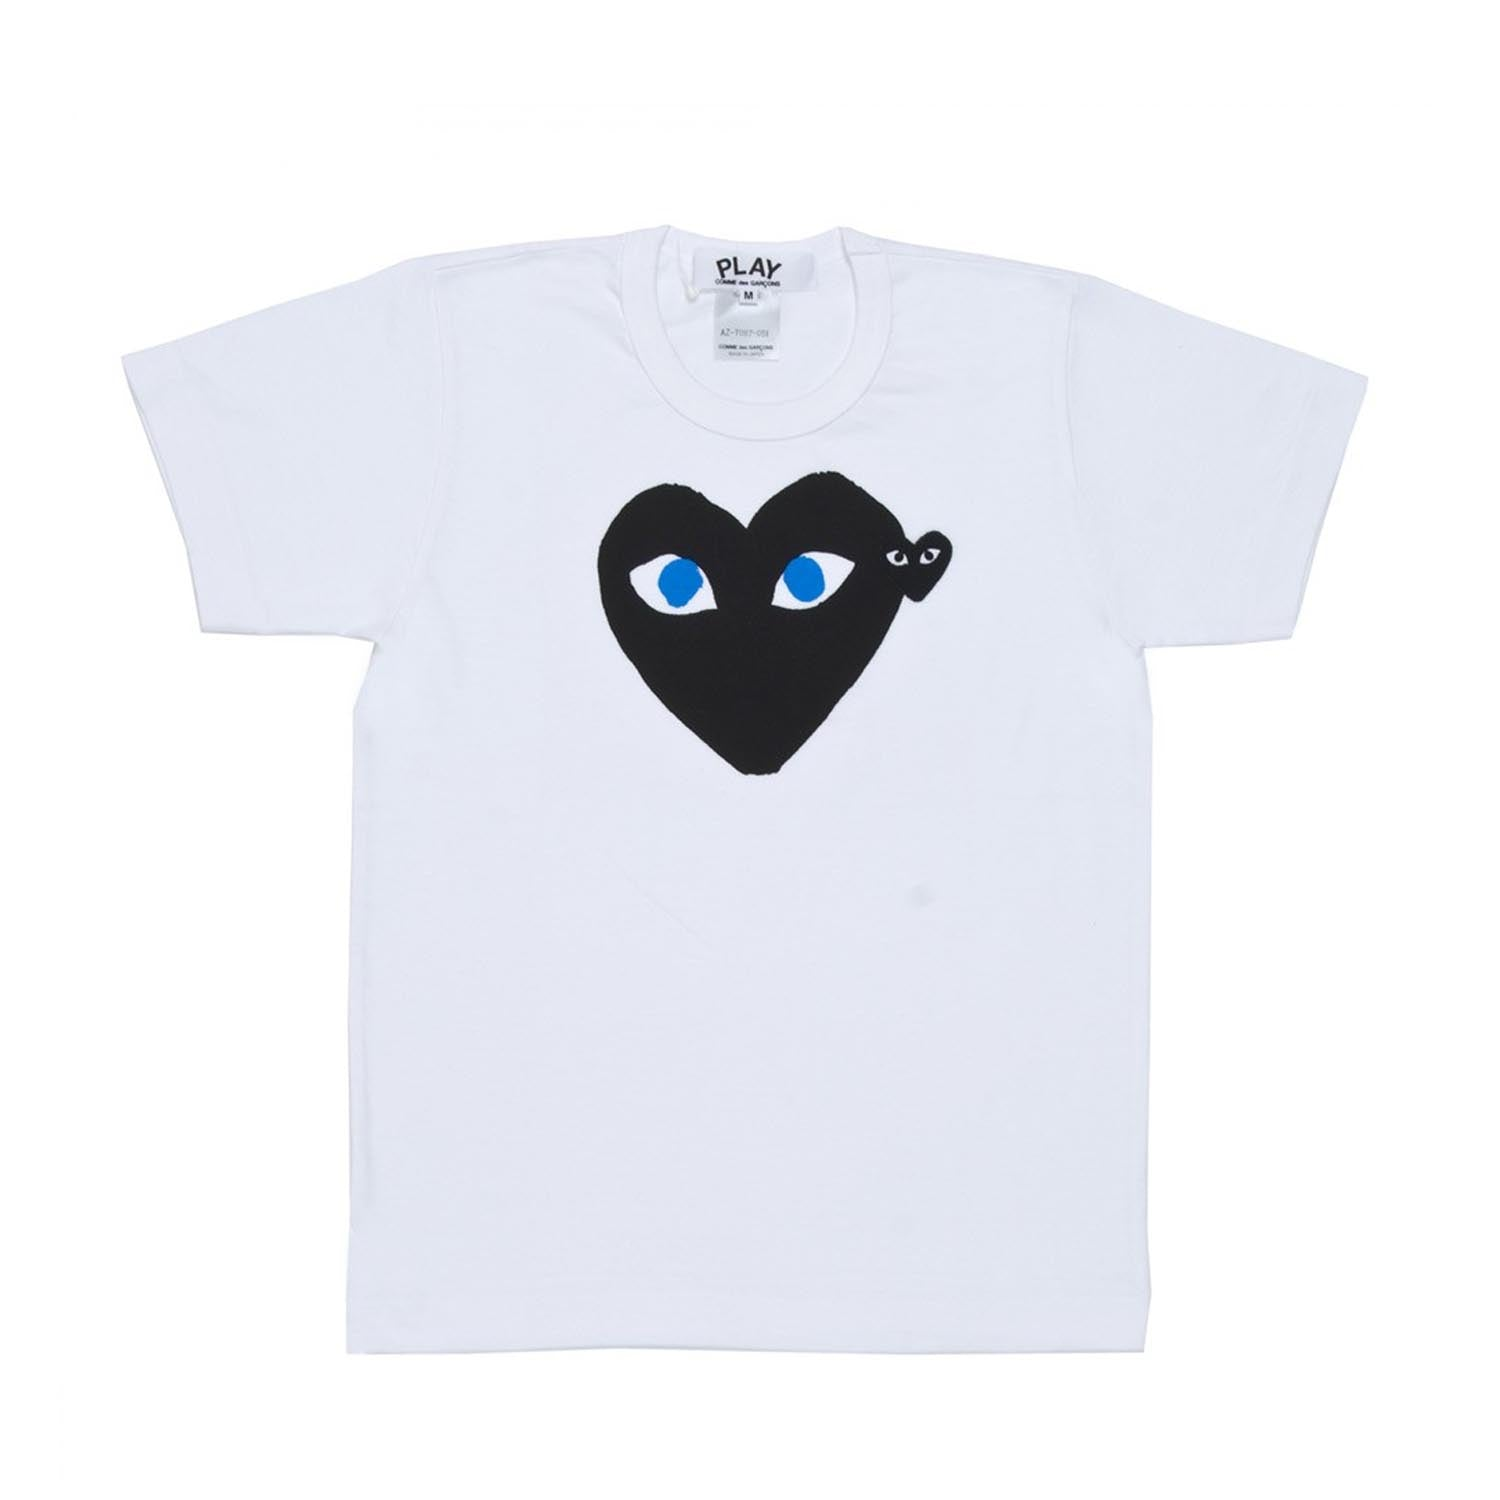 PLAY Heart with Blue Eyes T-Shirt